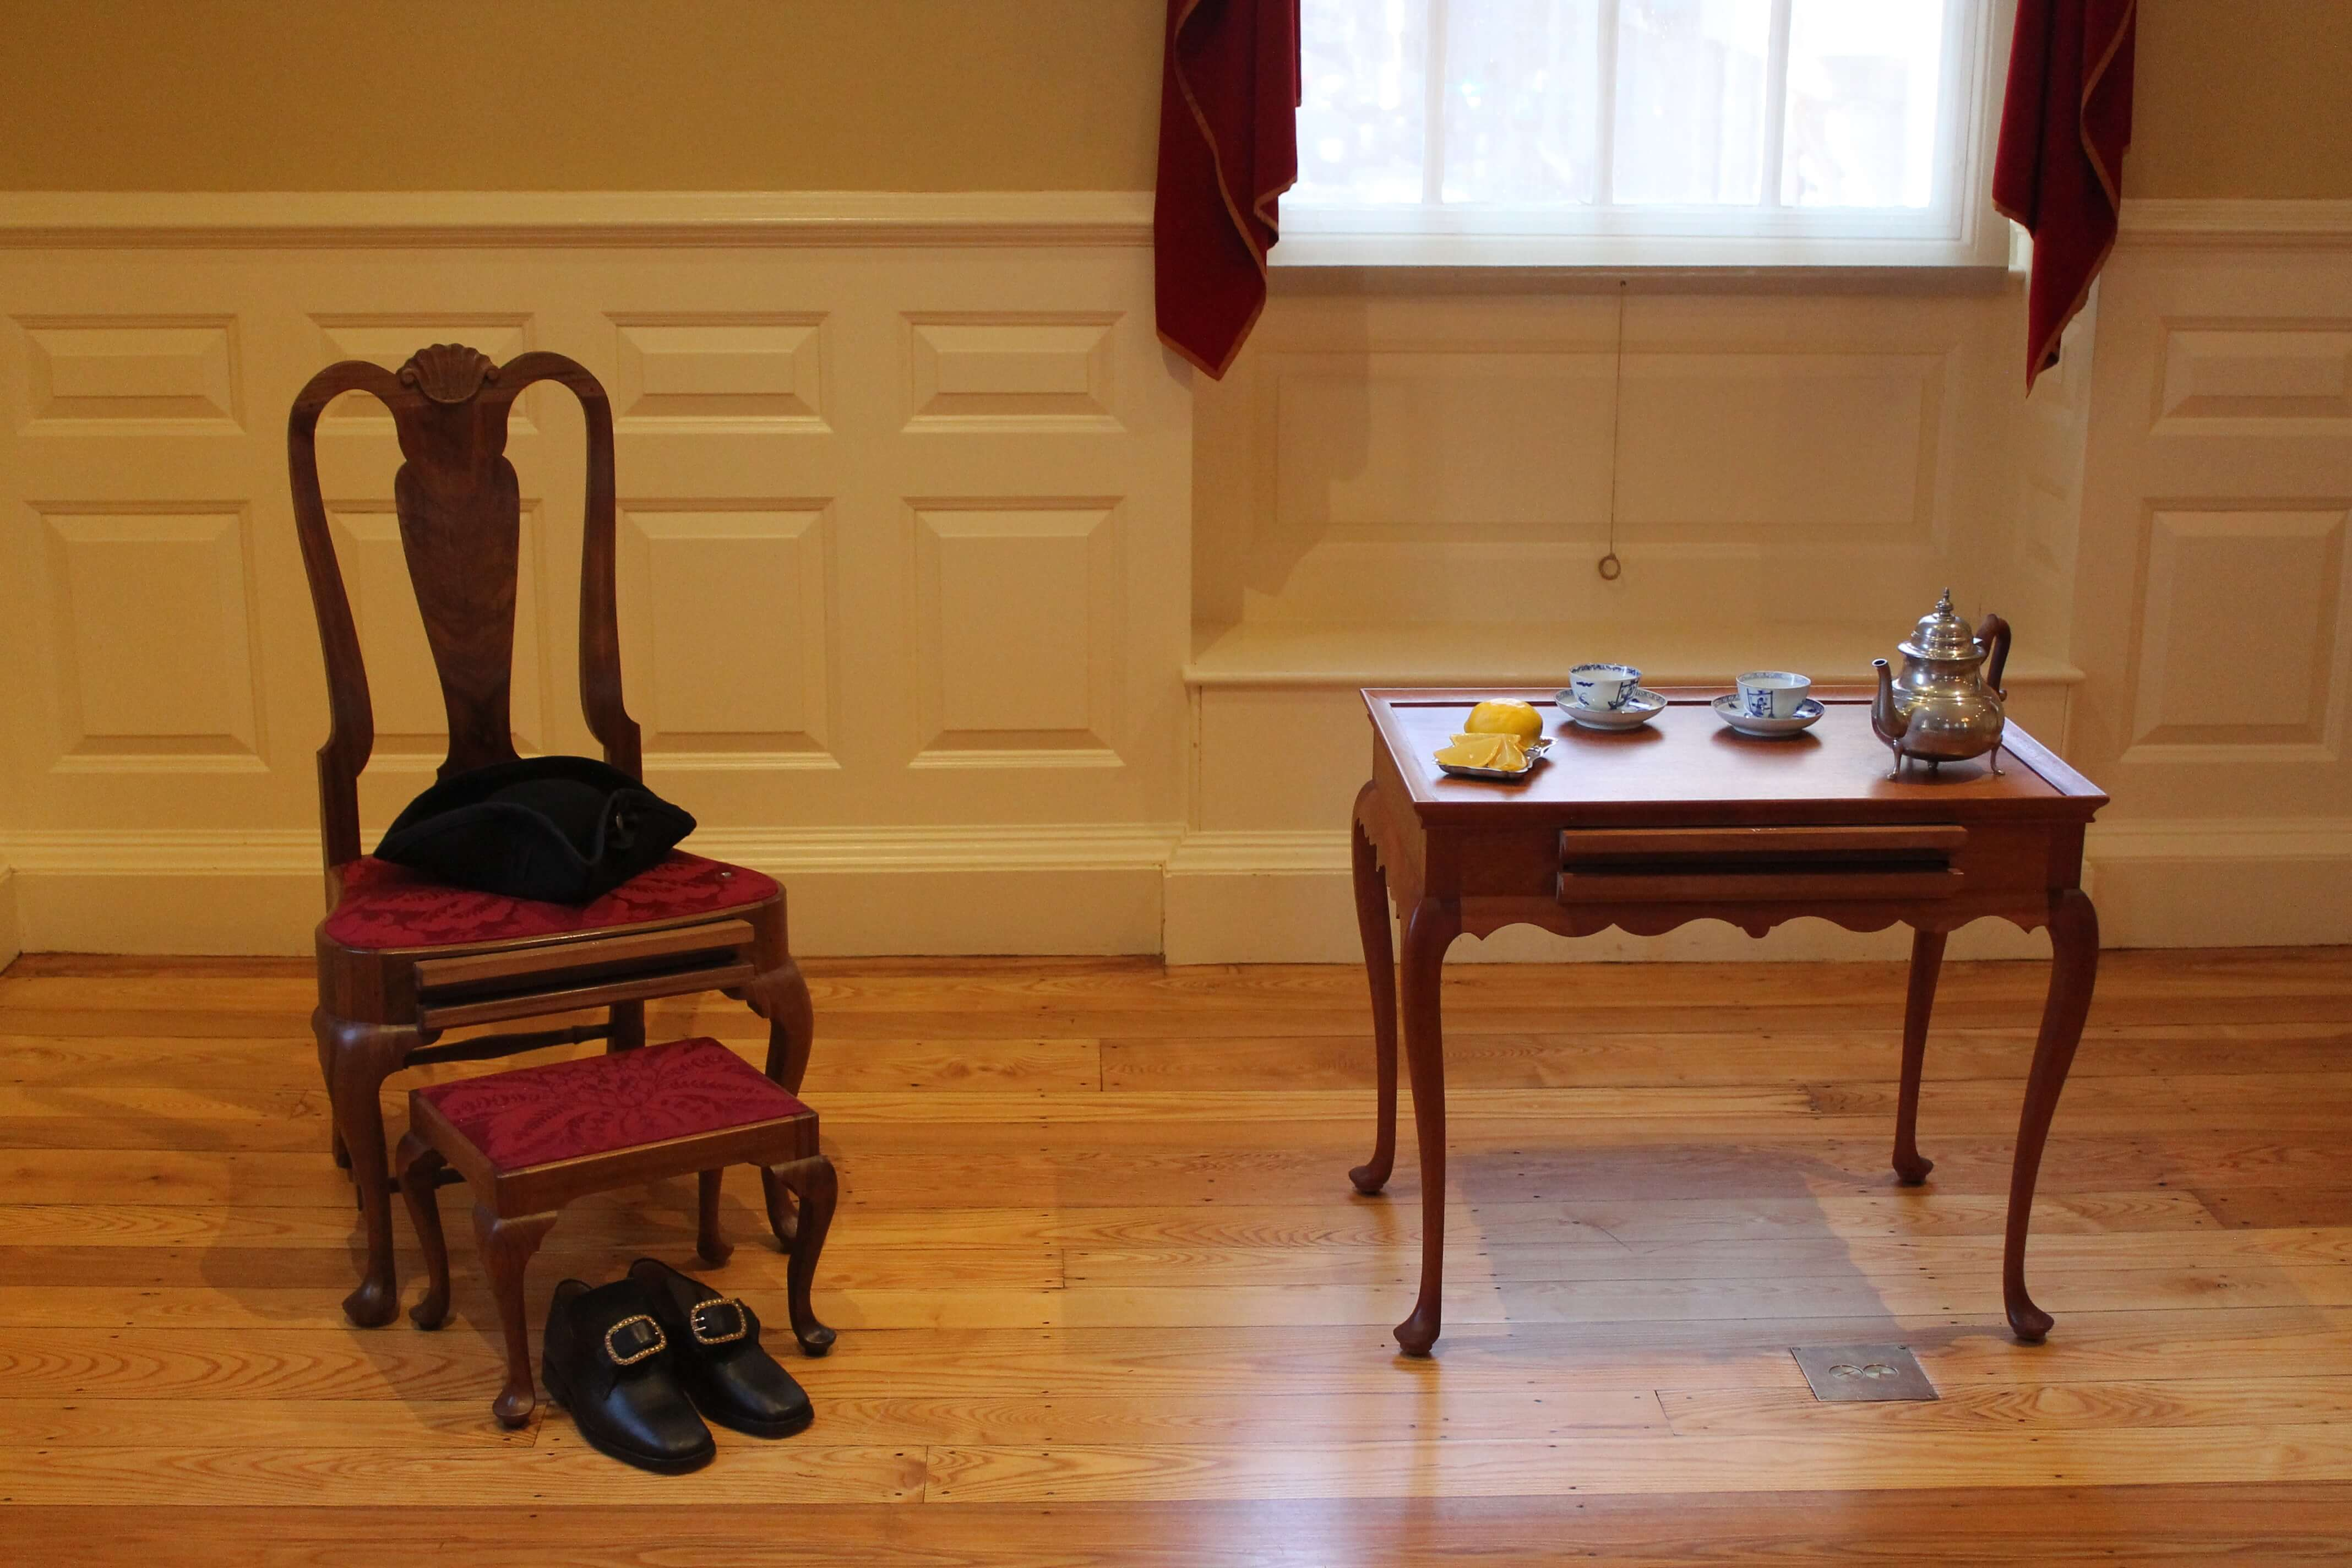 The Old State House | Kicking Back the Pebbles